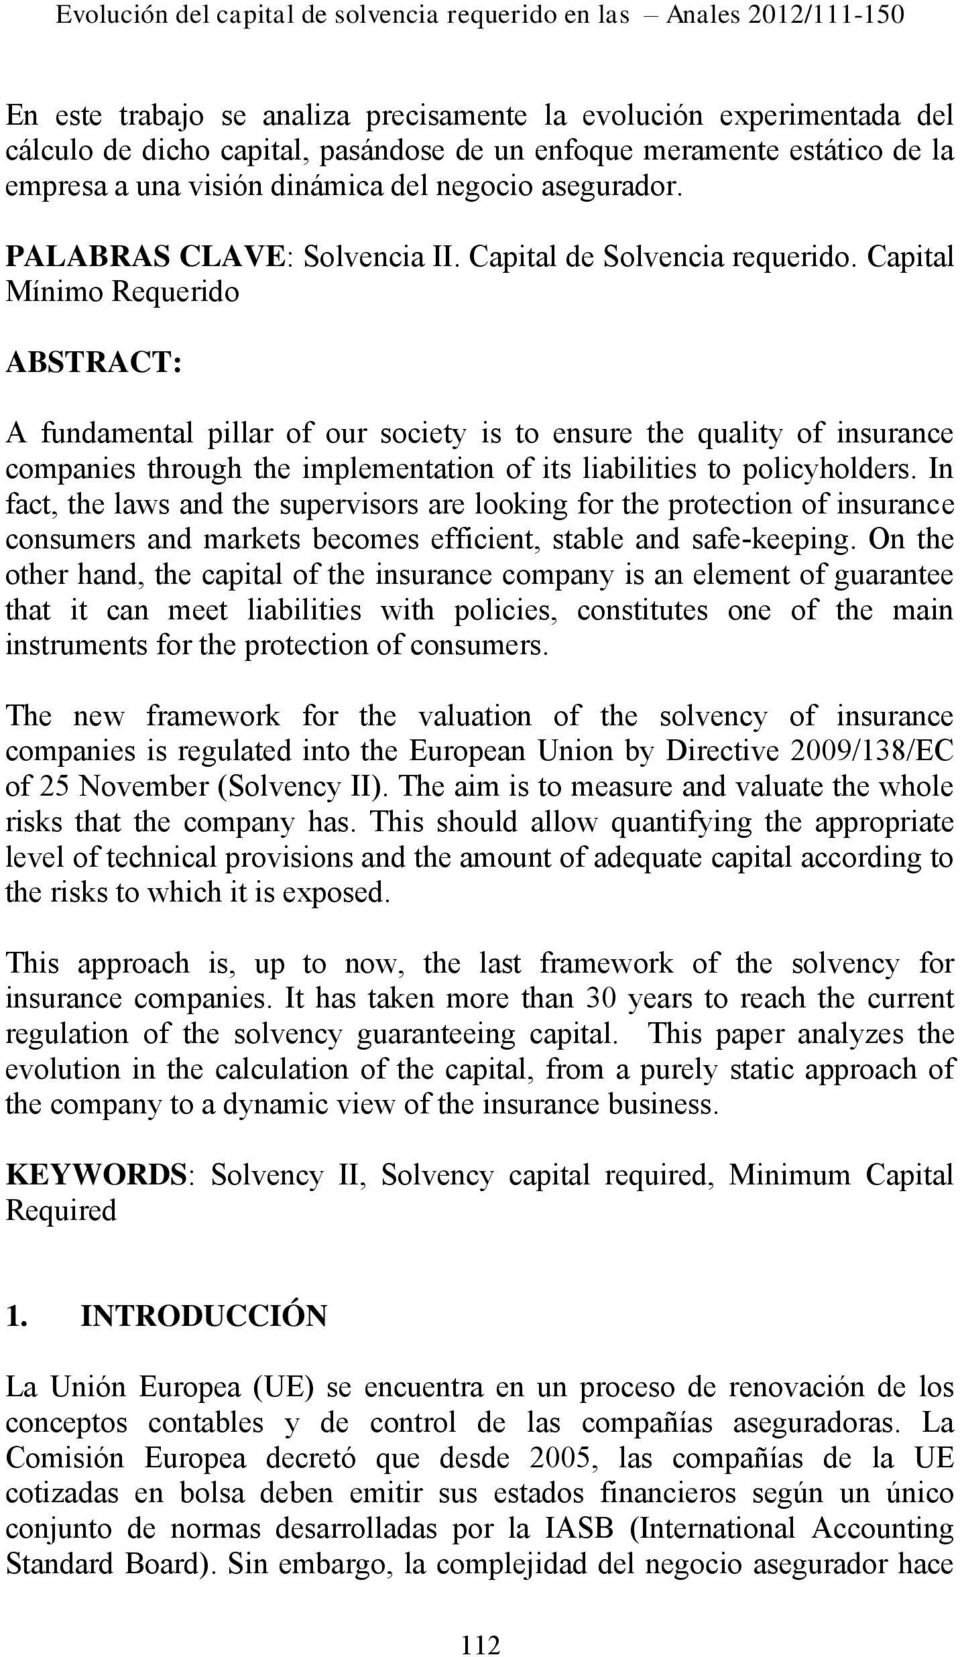 Capital Mínimo Requerido ABSTRACT: A fundamental pillar of our society is to ensure the quality of insurance companies through the implementation of its liabilities to policyholders.